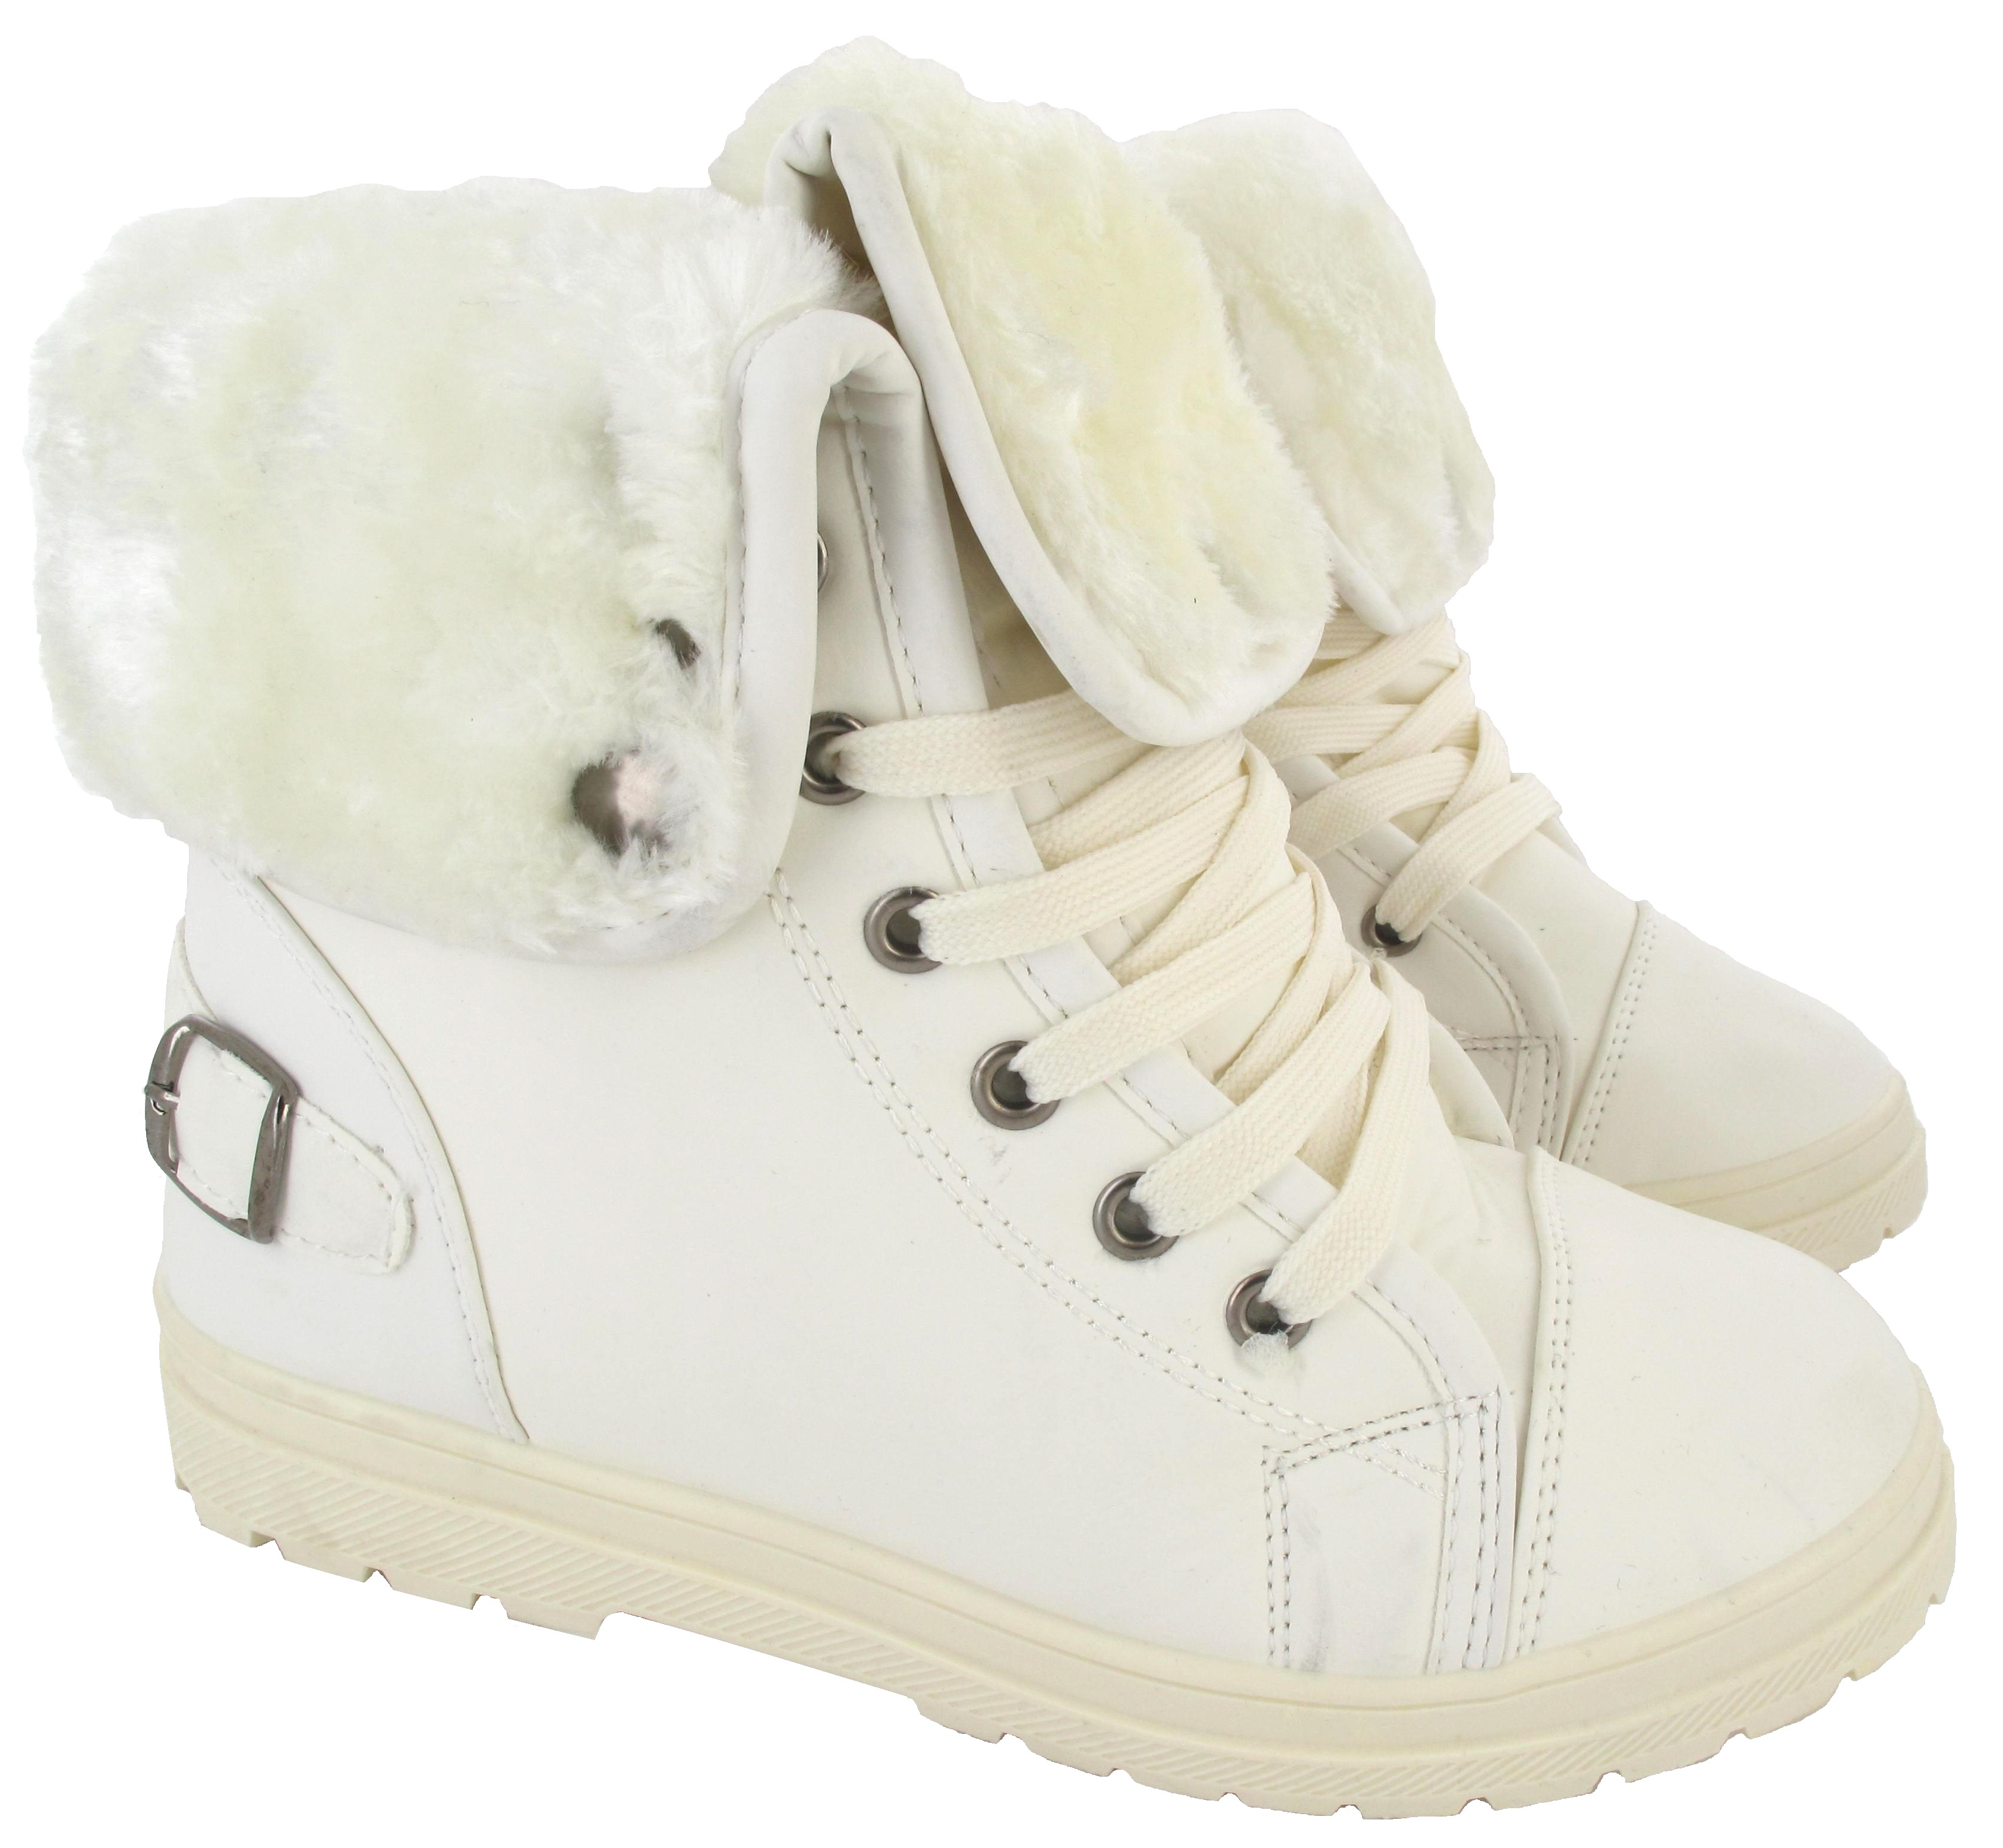 LADIES FAUX FUR GRIP SOLE WOMENS WINTER WARM ANKLE BOOTS TRAINERS